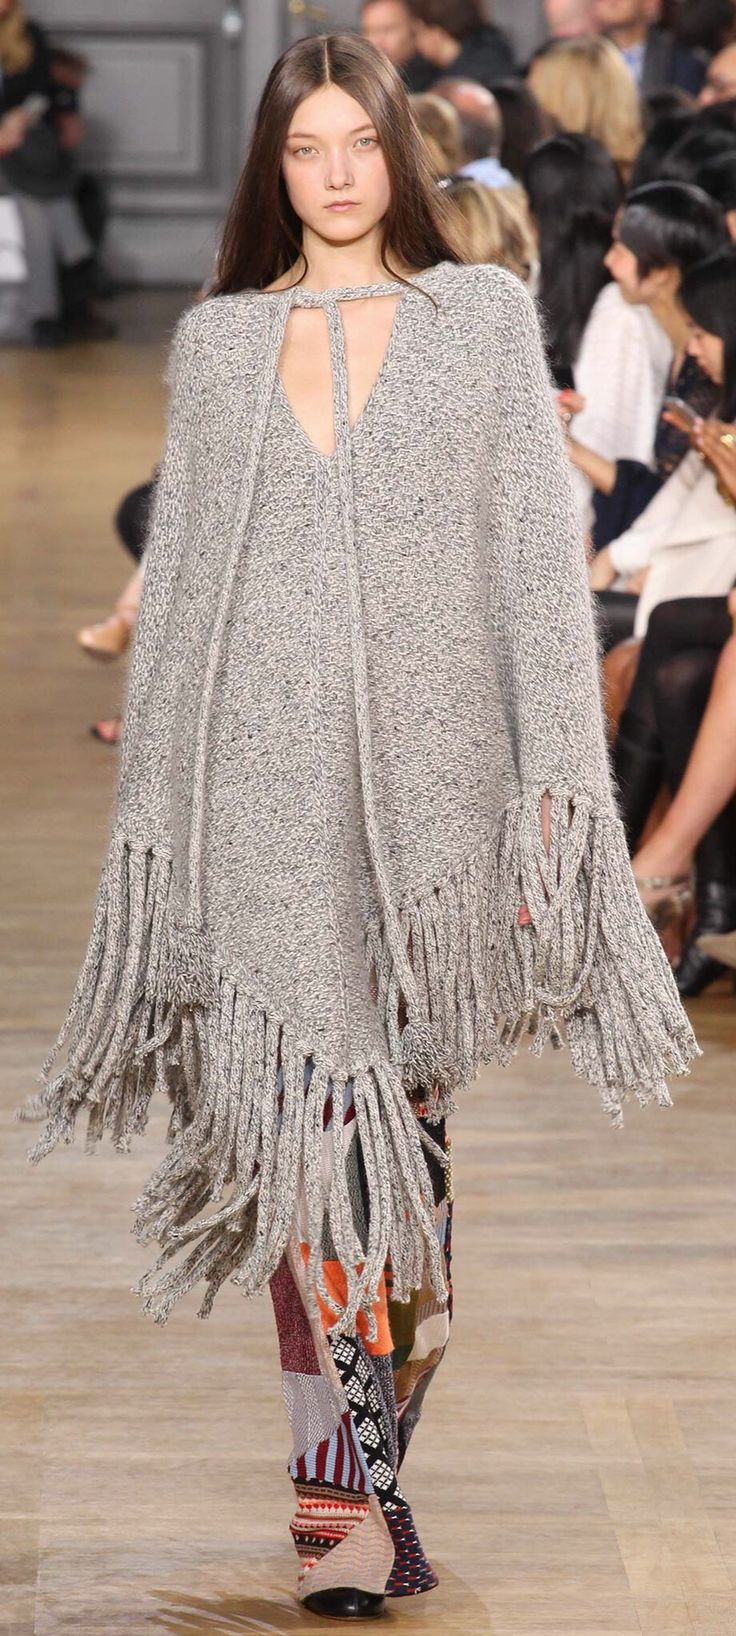 10 Stylish Ponchos :: The Entertaining House. Image via Vogue